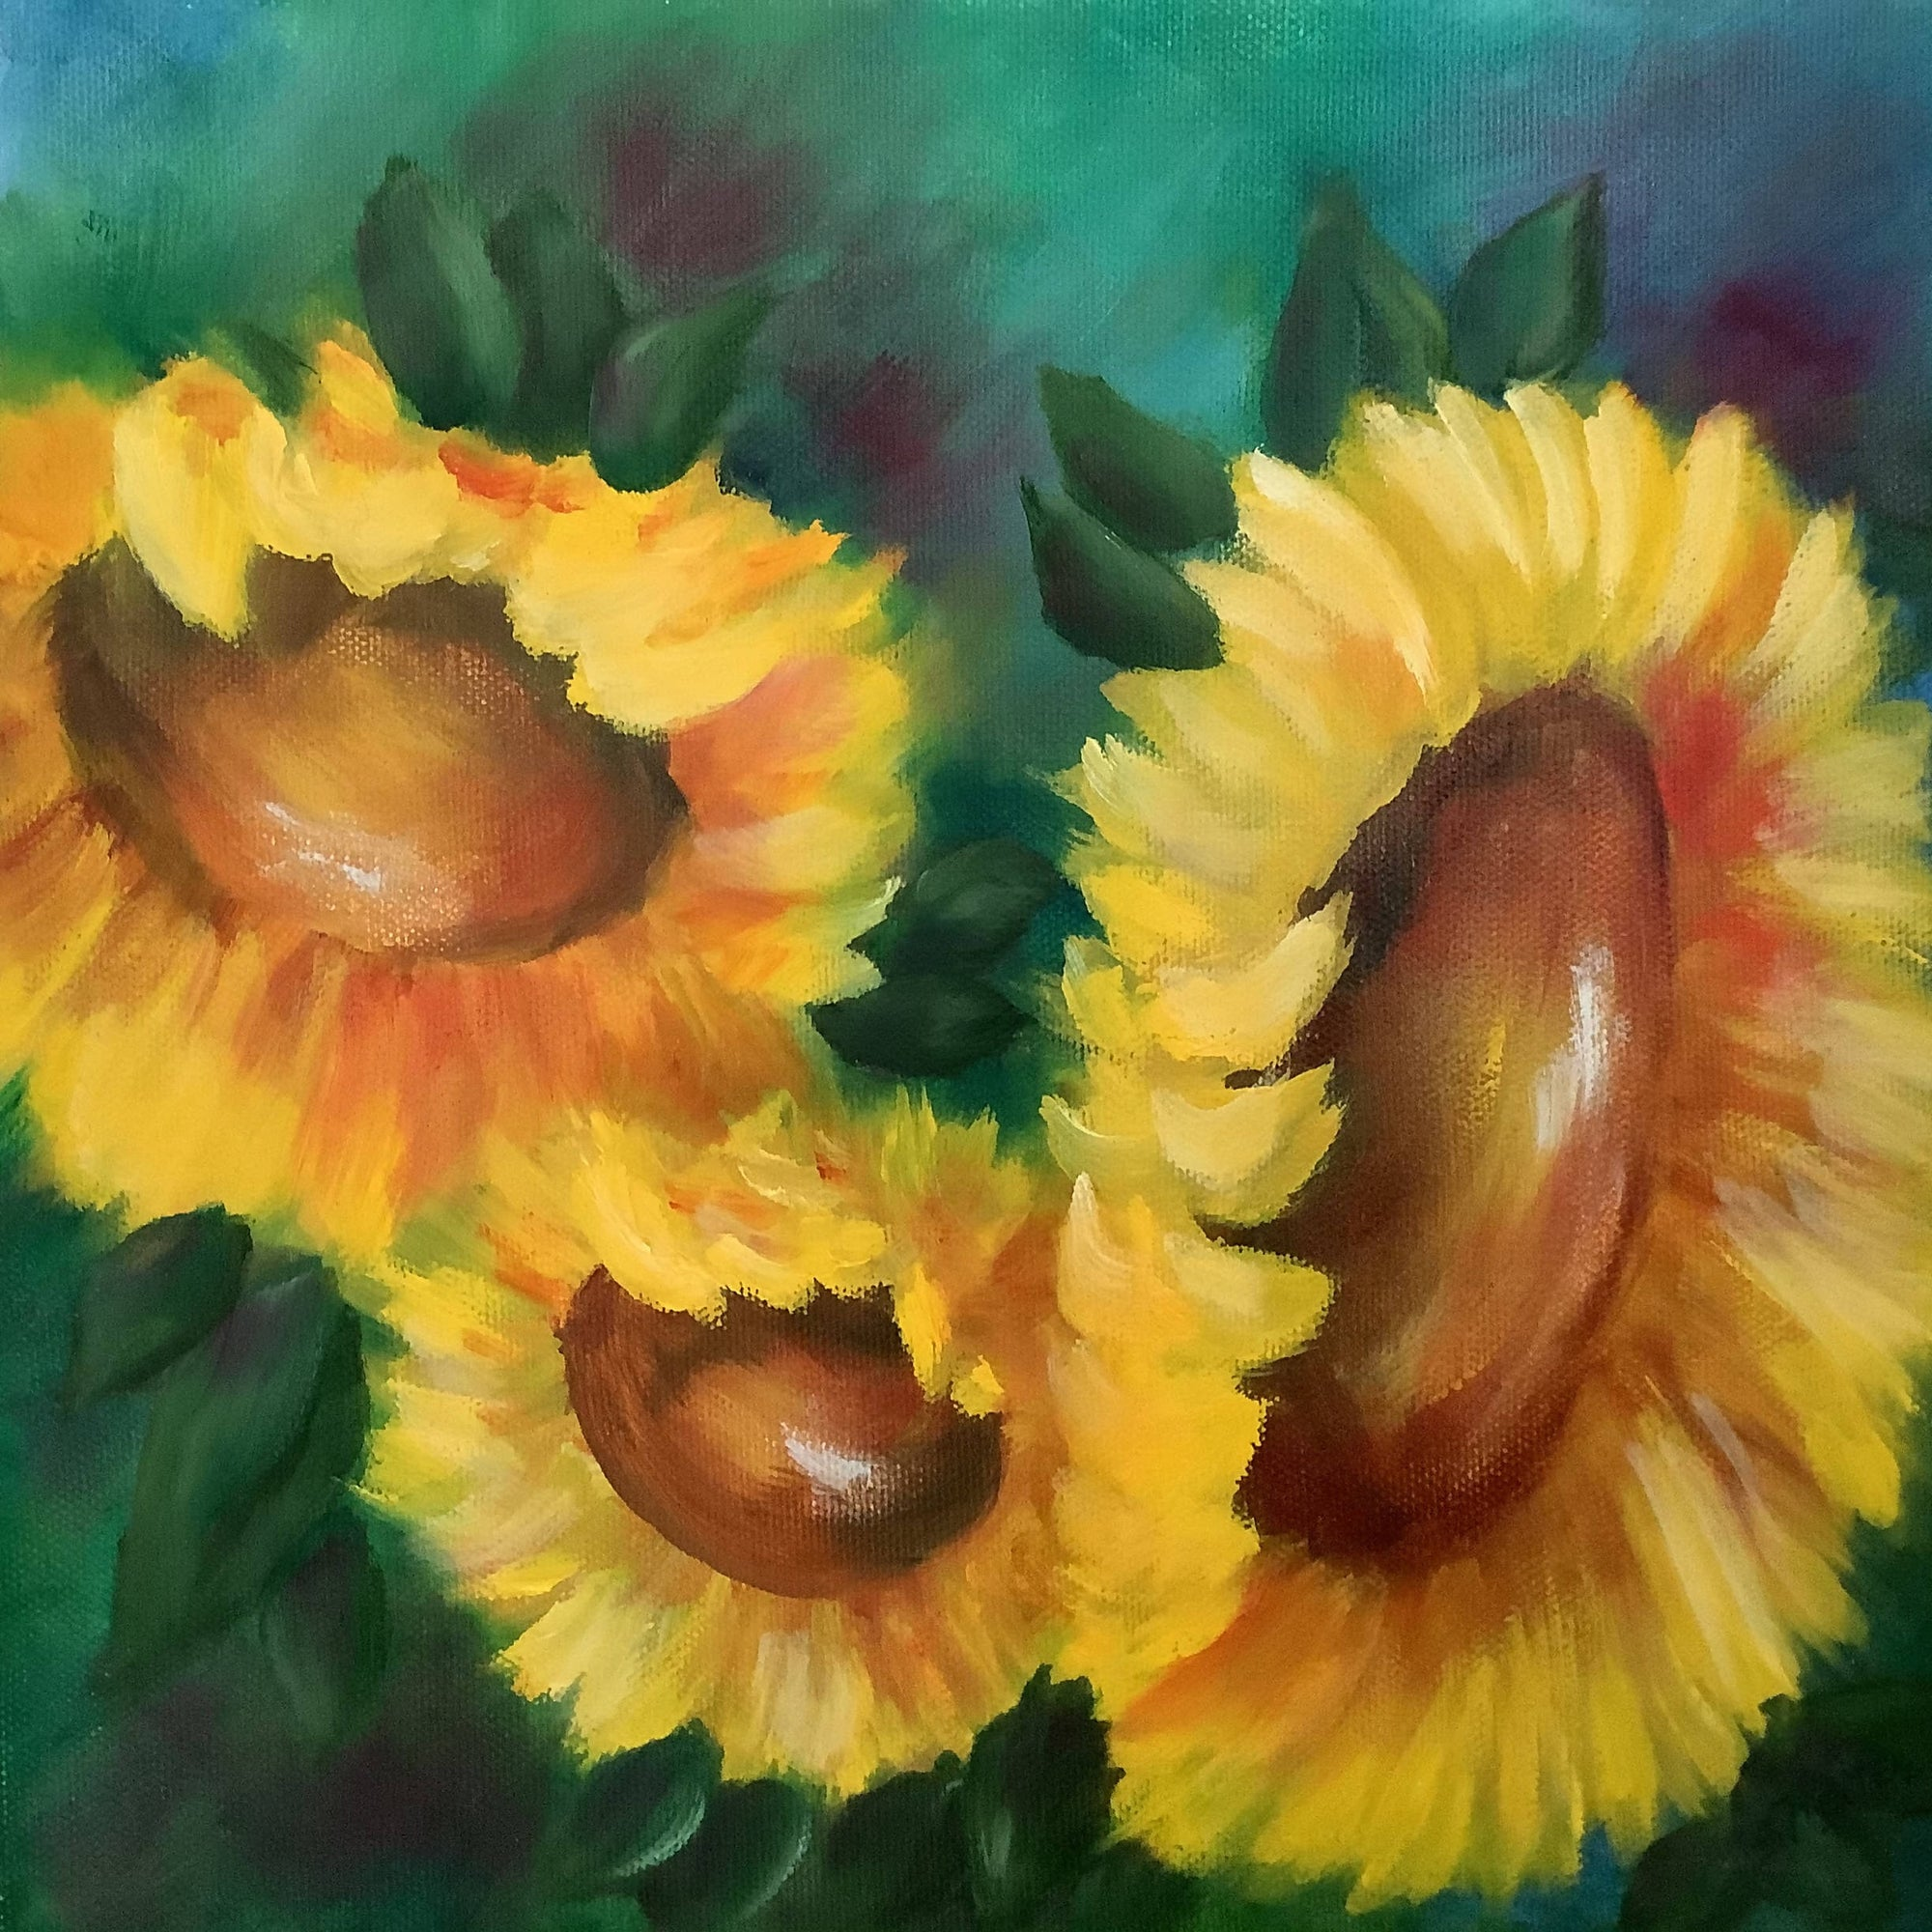 Beautiful Oil Painting of 3 Sunflowers on Canvas